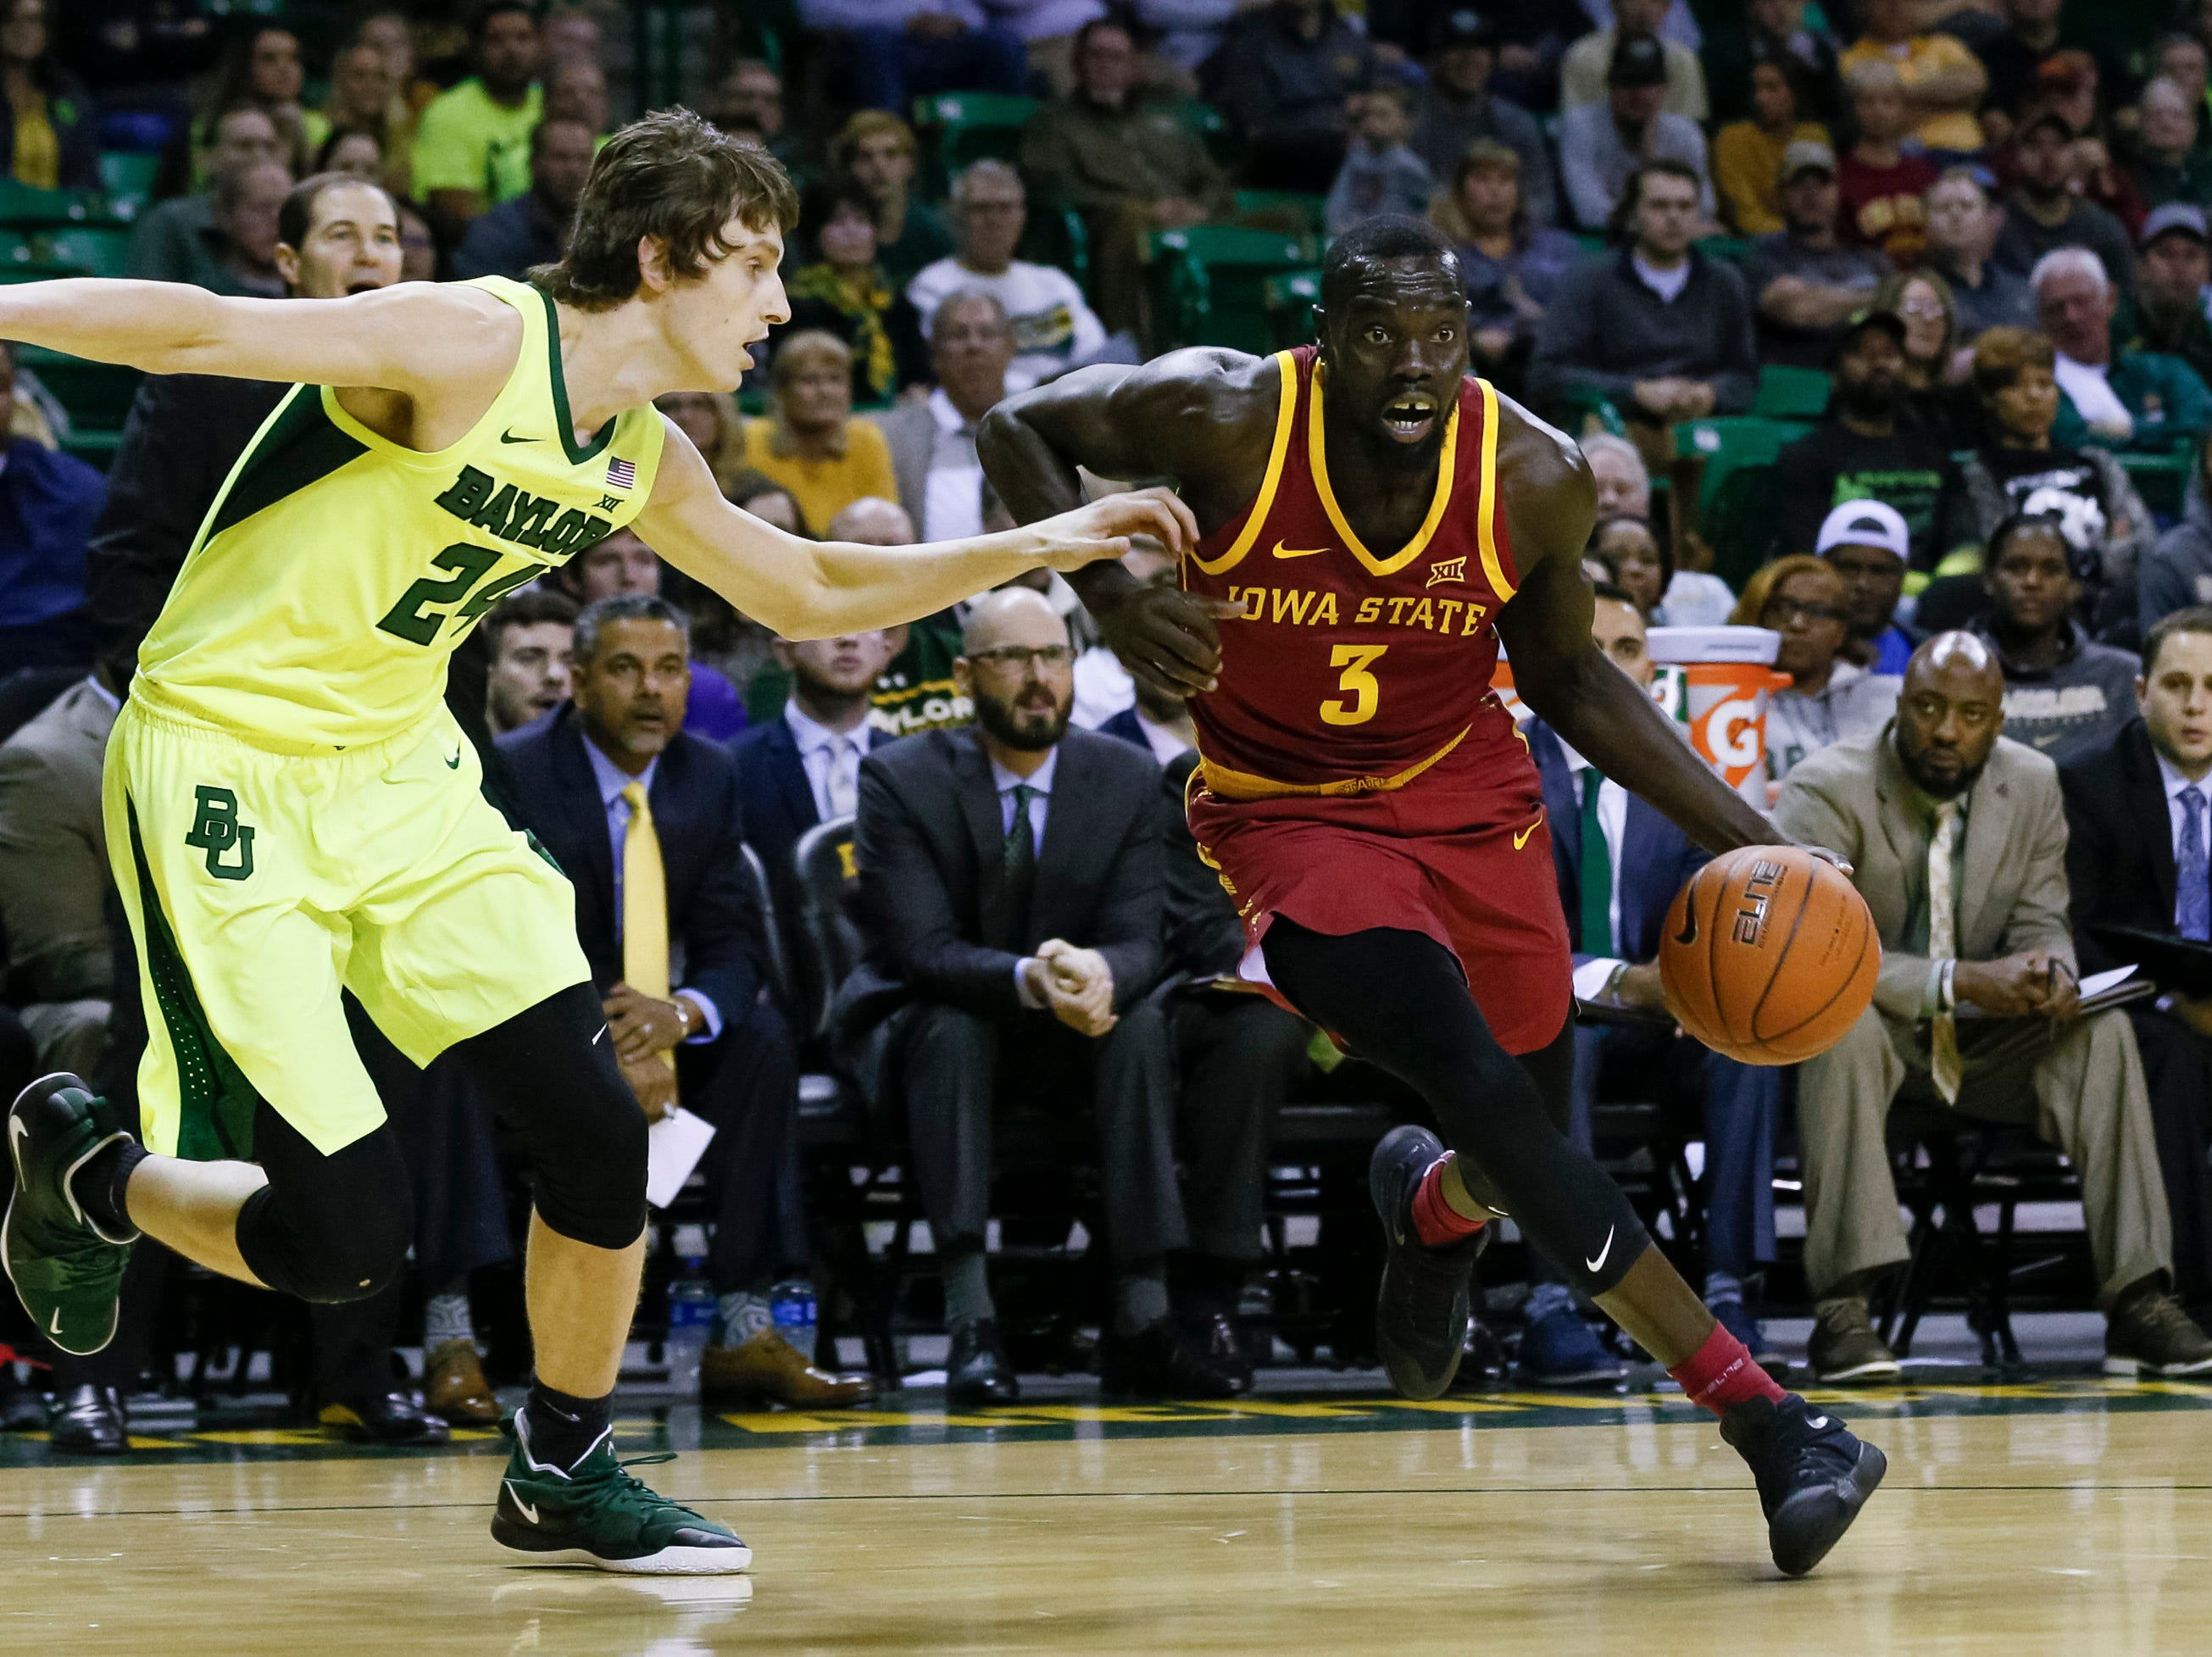 Iowa State Cyclones guard Marial Shayok (3) drives against Baylor Bears guard Matthew Mayer (24) during the first half at Ferrell Center.